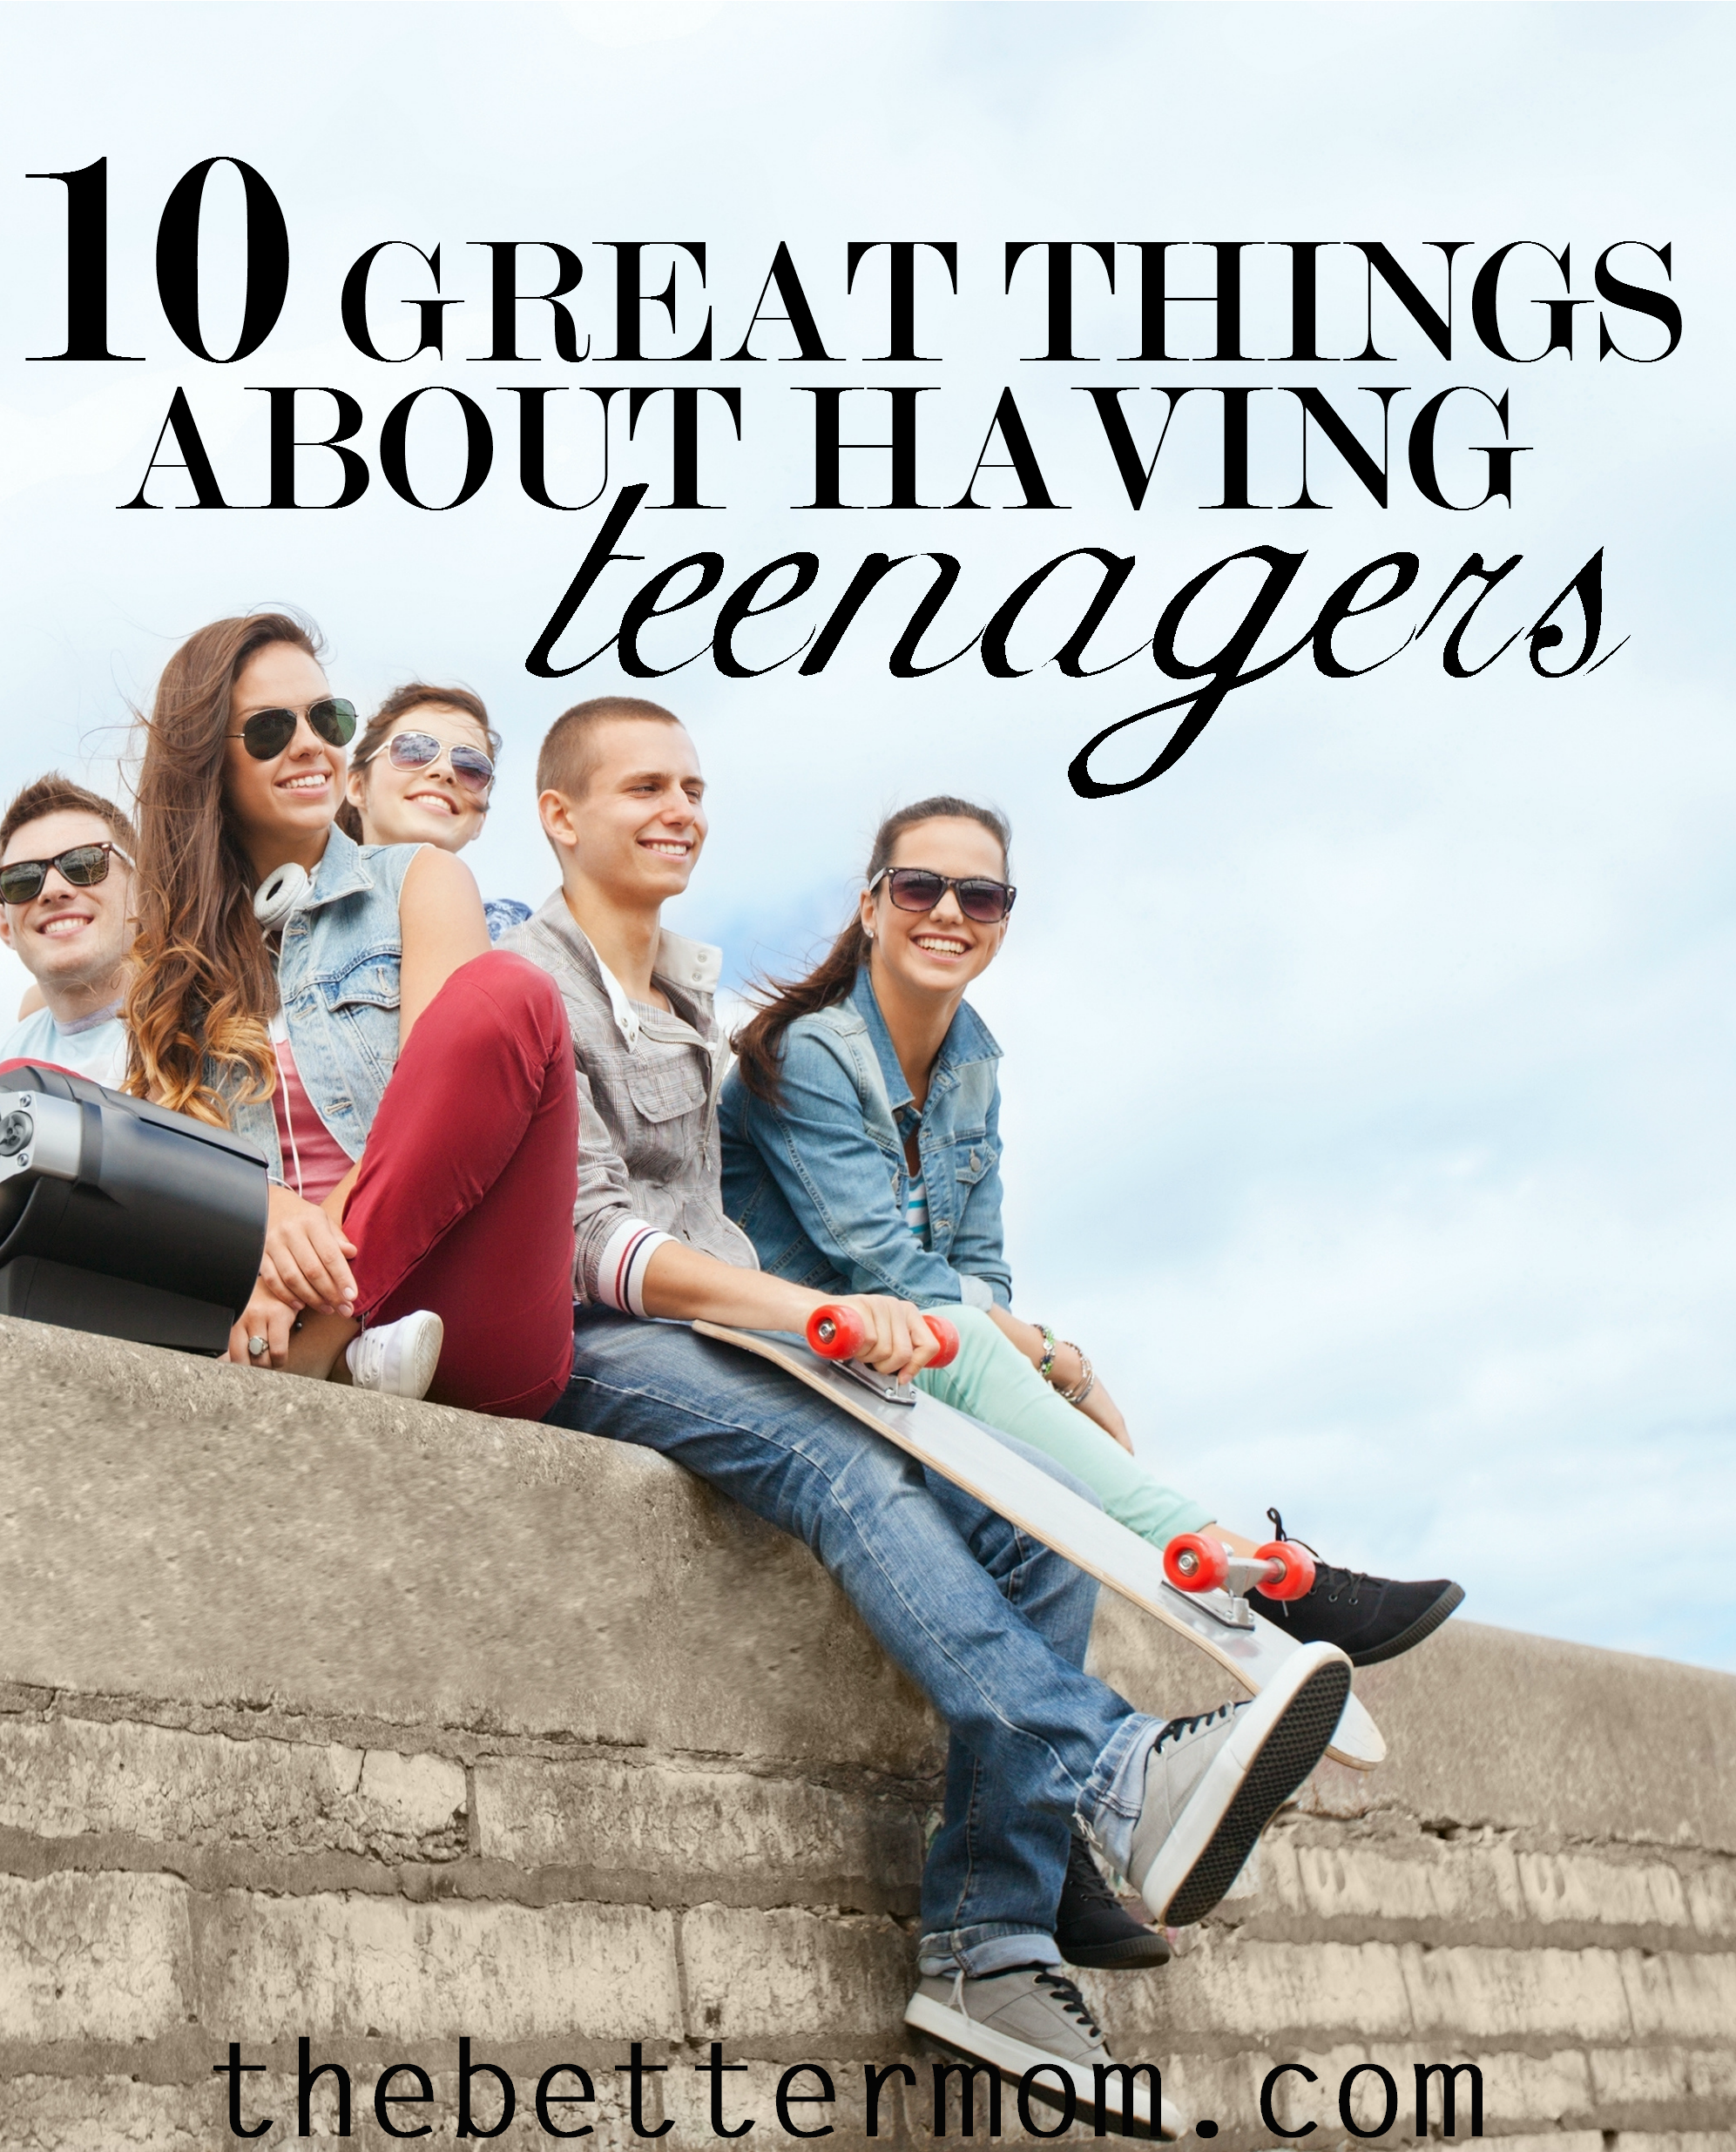 Nervous about what may lie ahead in the teen years? Whether you already have a teen or are preparing for one, here are 10 blessings of this season to enjoy and encourage you!!